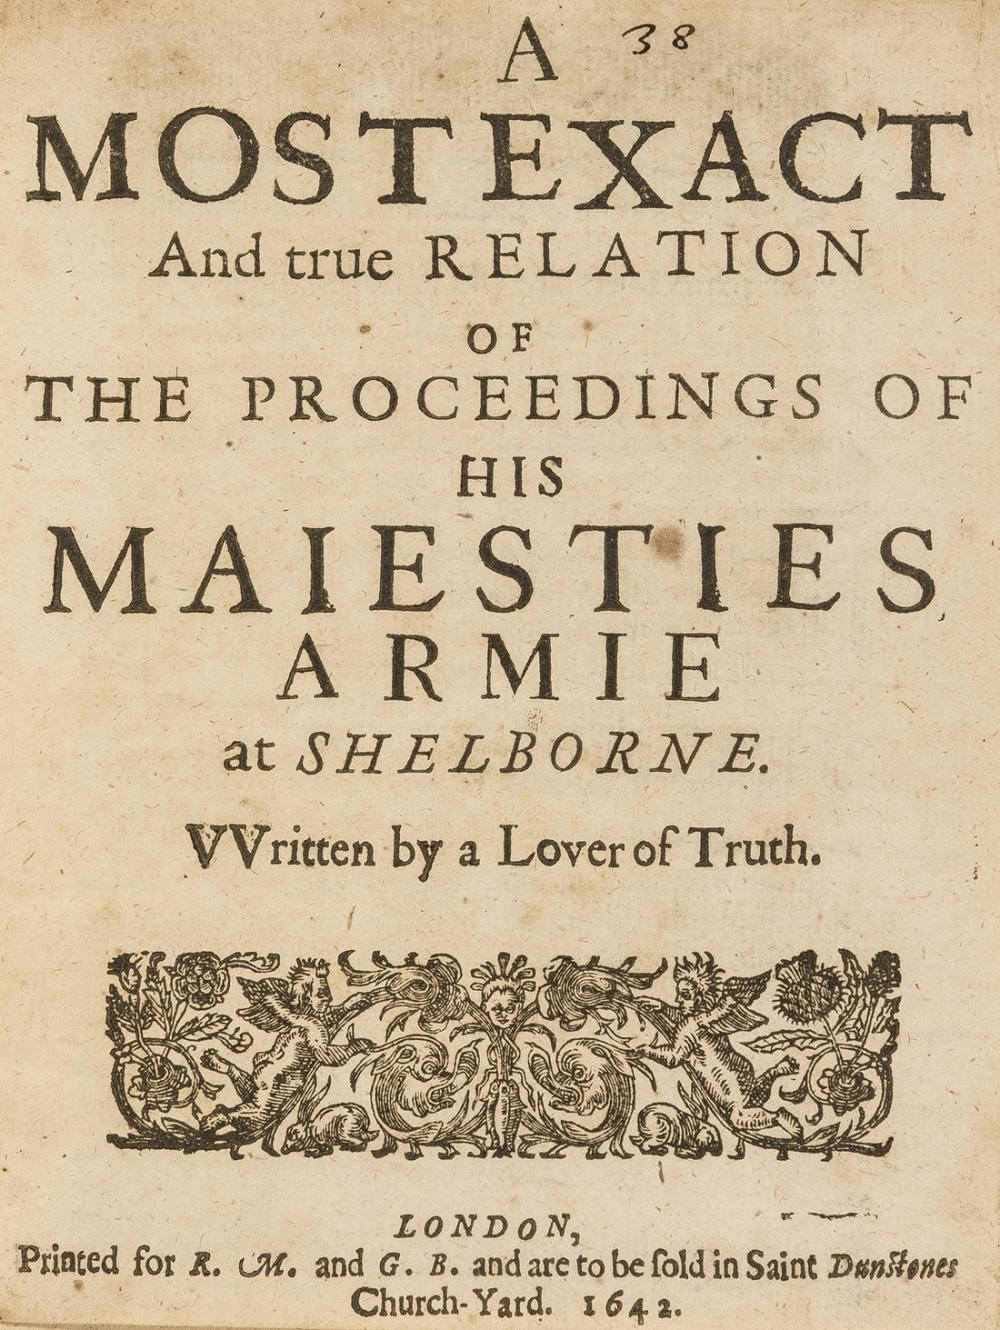 Civil War Pamphlet.- , Most Exact and True Relation (A) of the Proceedings of His Maiesties Armie at Shelborne...by a Lover of Truth, for R.M. and G.B., 1642.